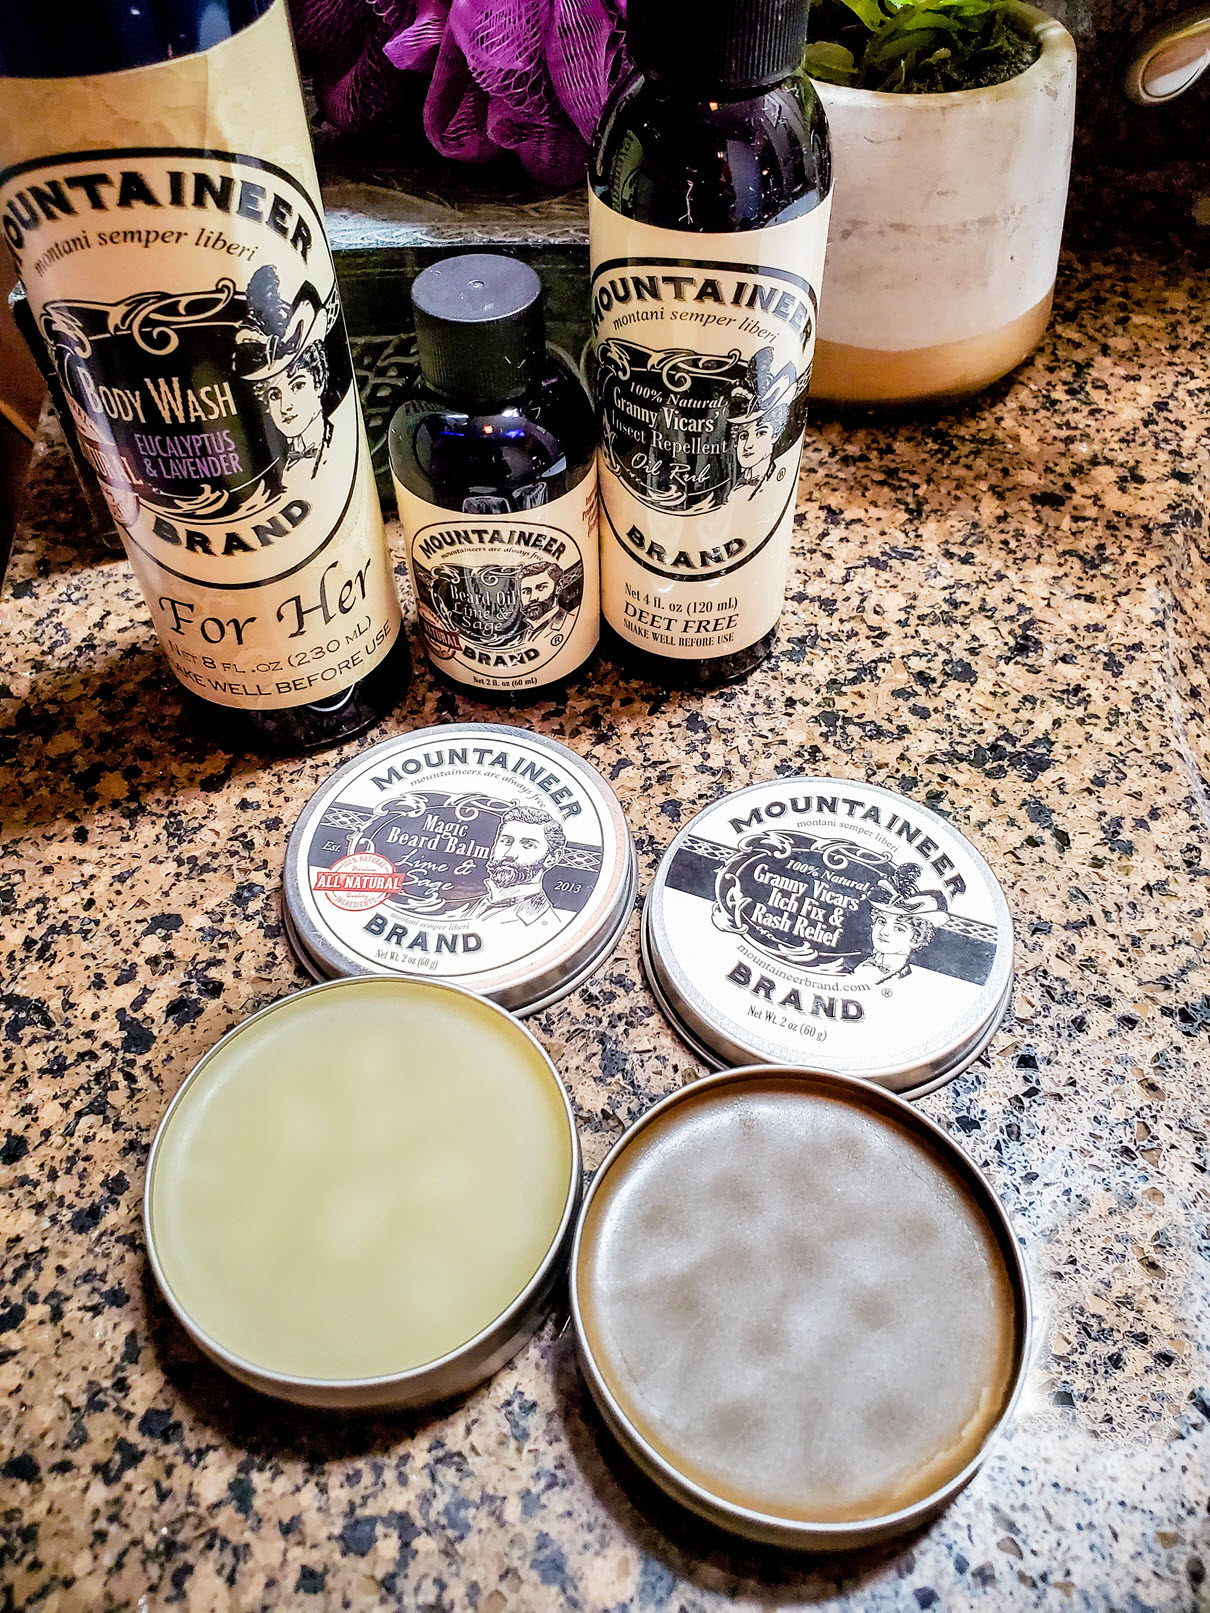 Beard Grooming Care Kit for Men by Mountaineer Brand